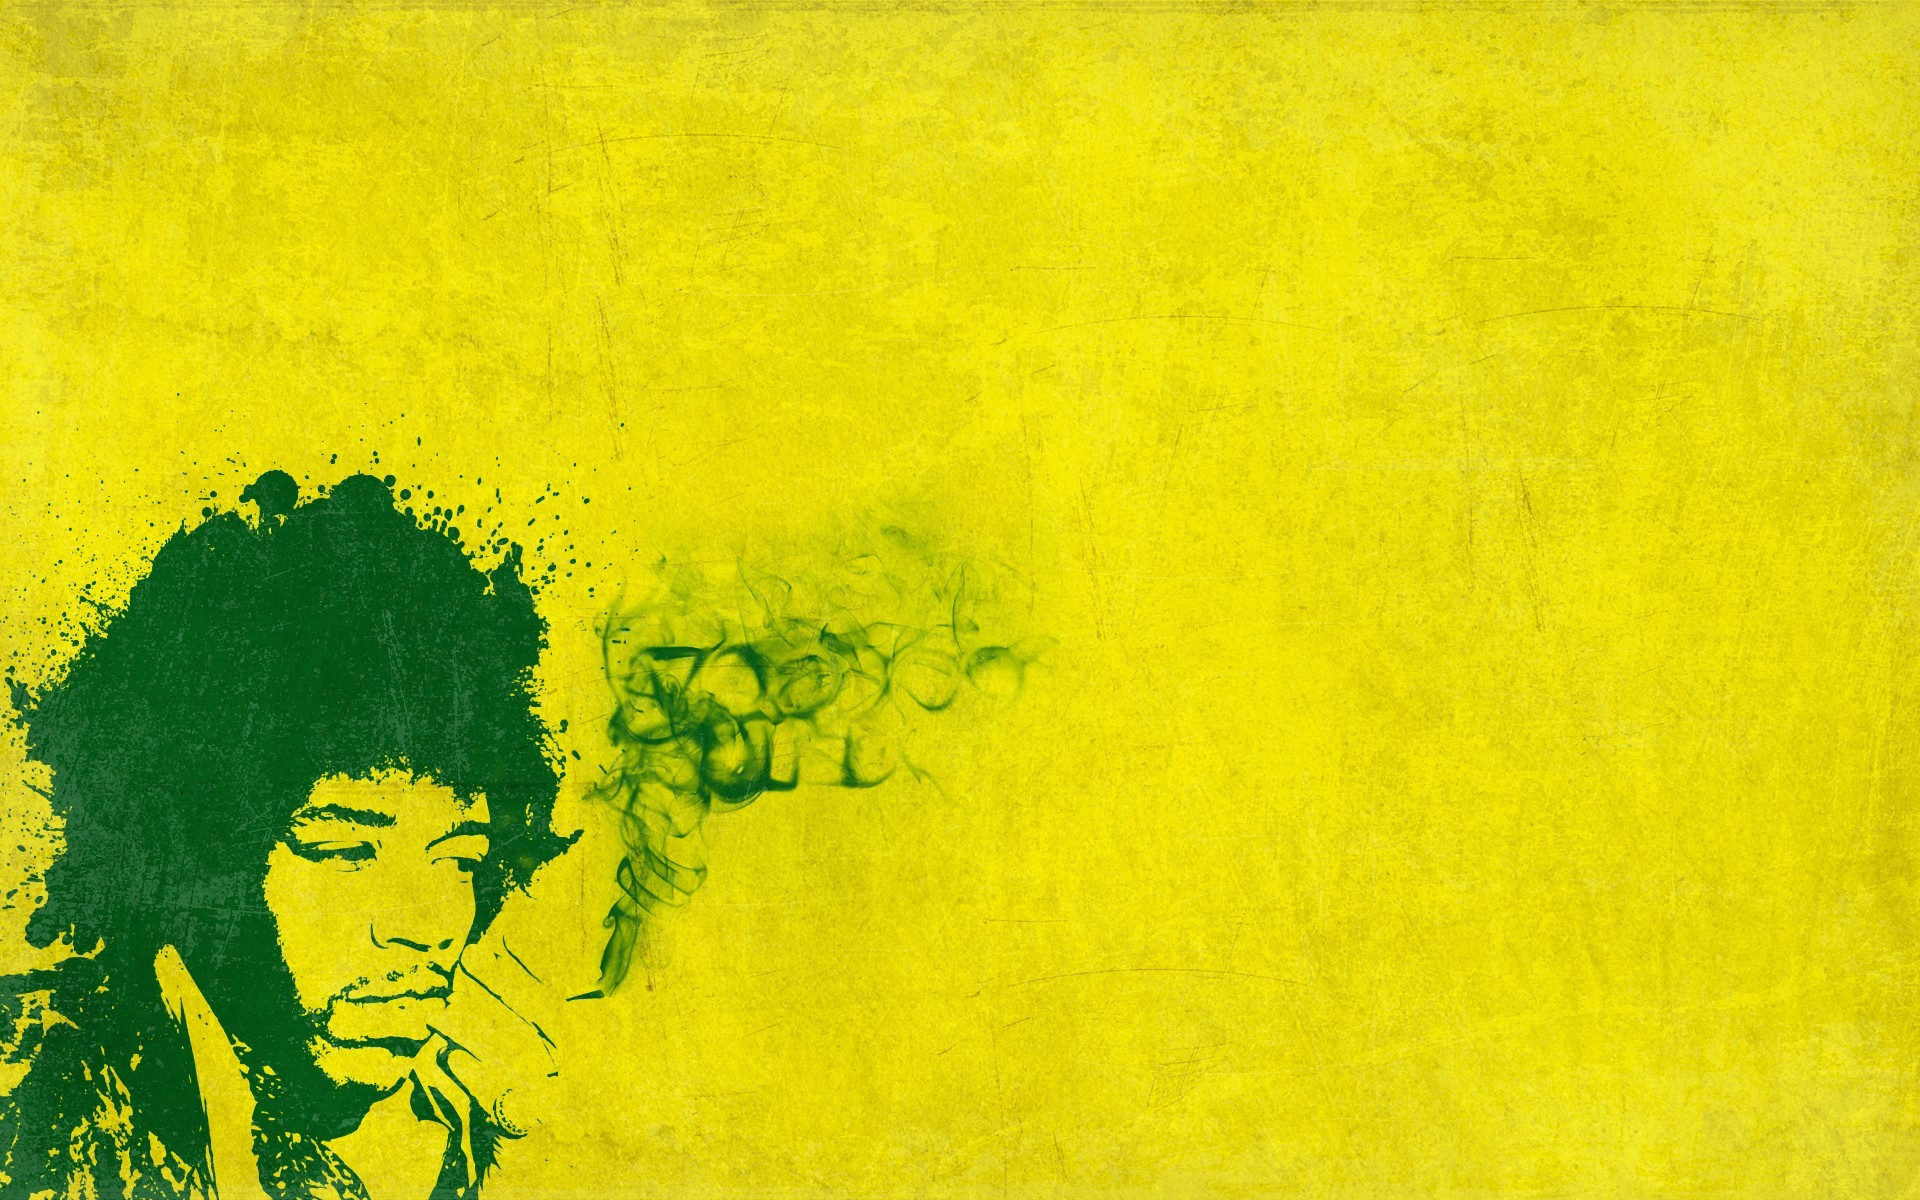 Jimi hendrix wallpaper download free high resolution wallpapers images of jimi hendrix thecheapjerseys Choice Image